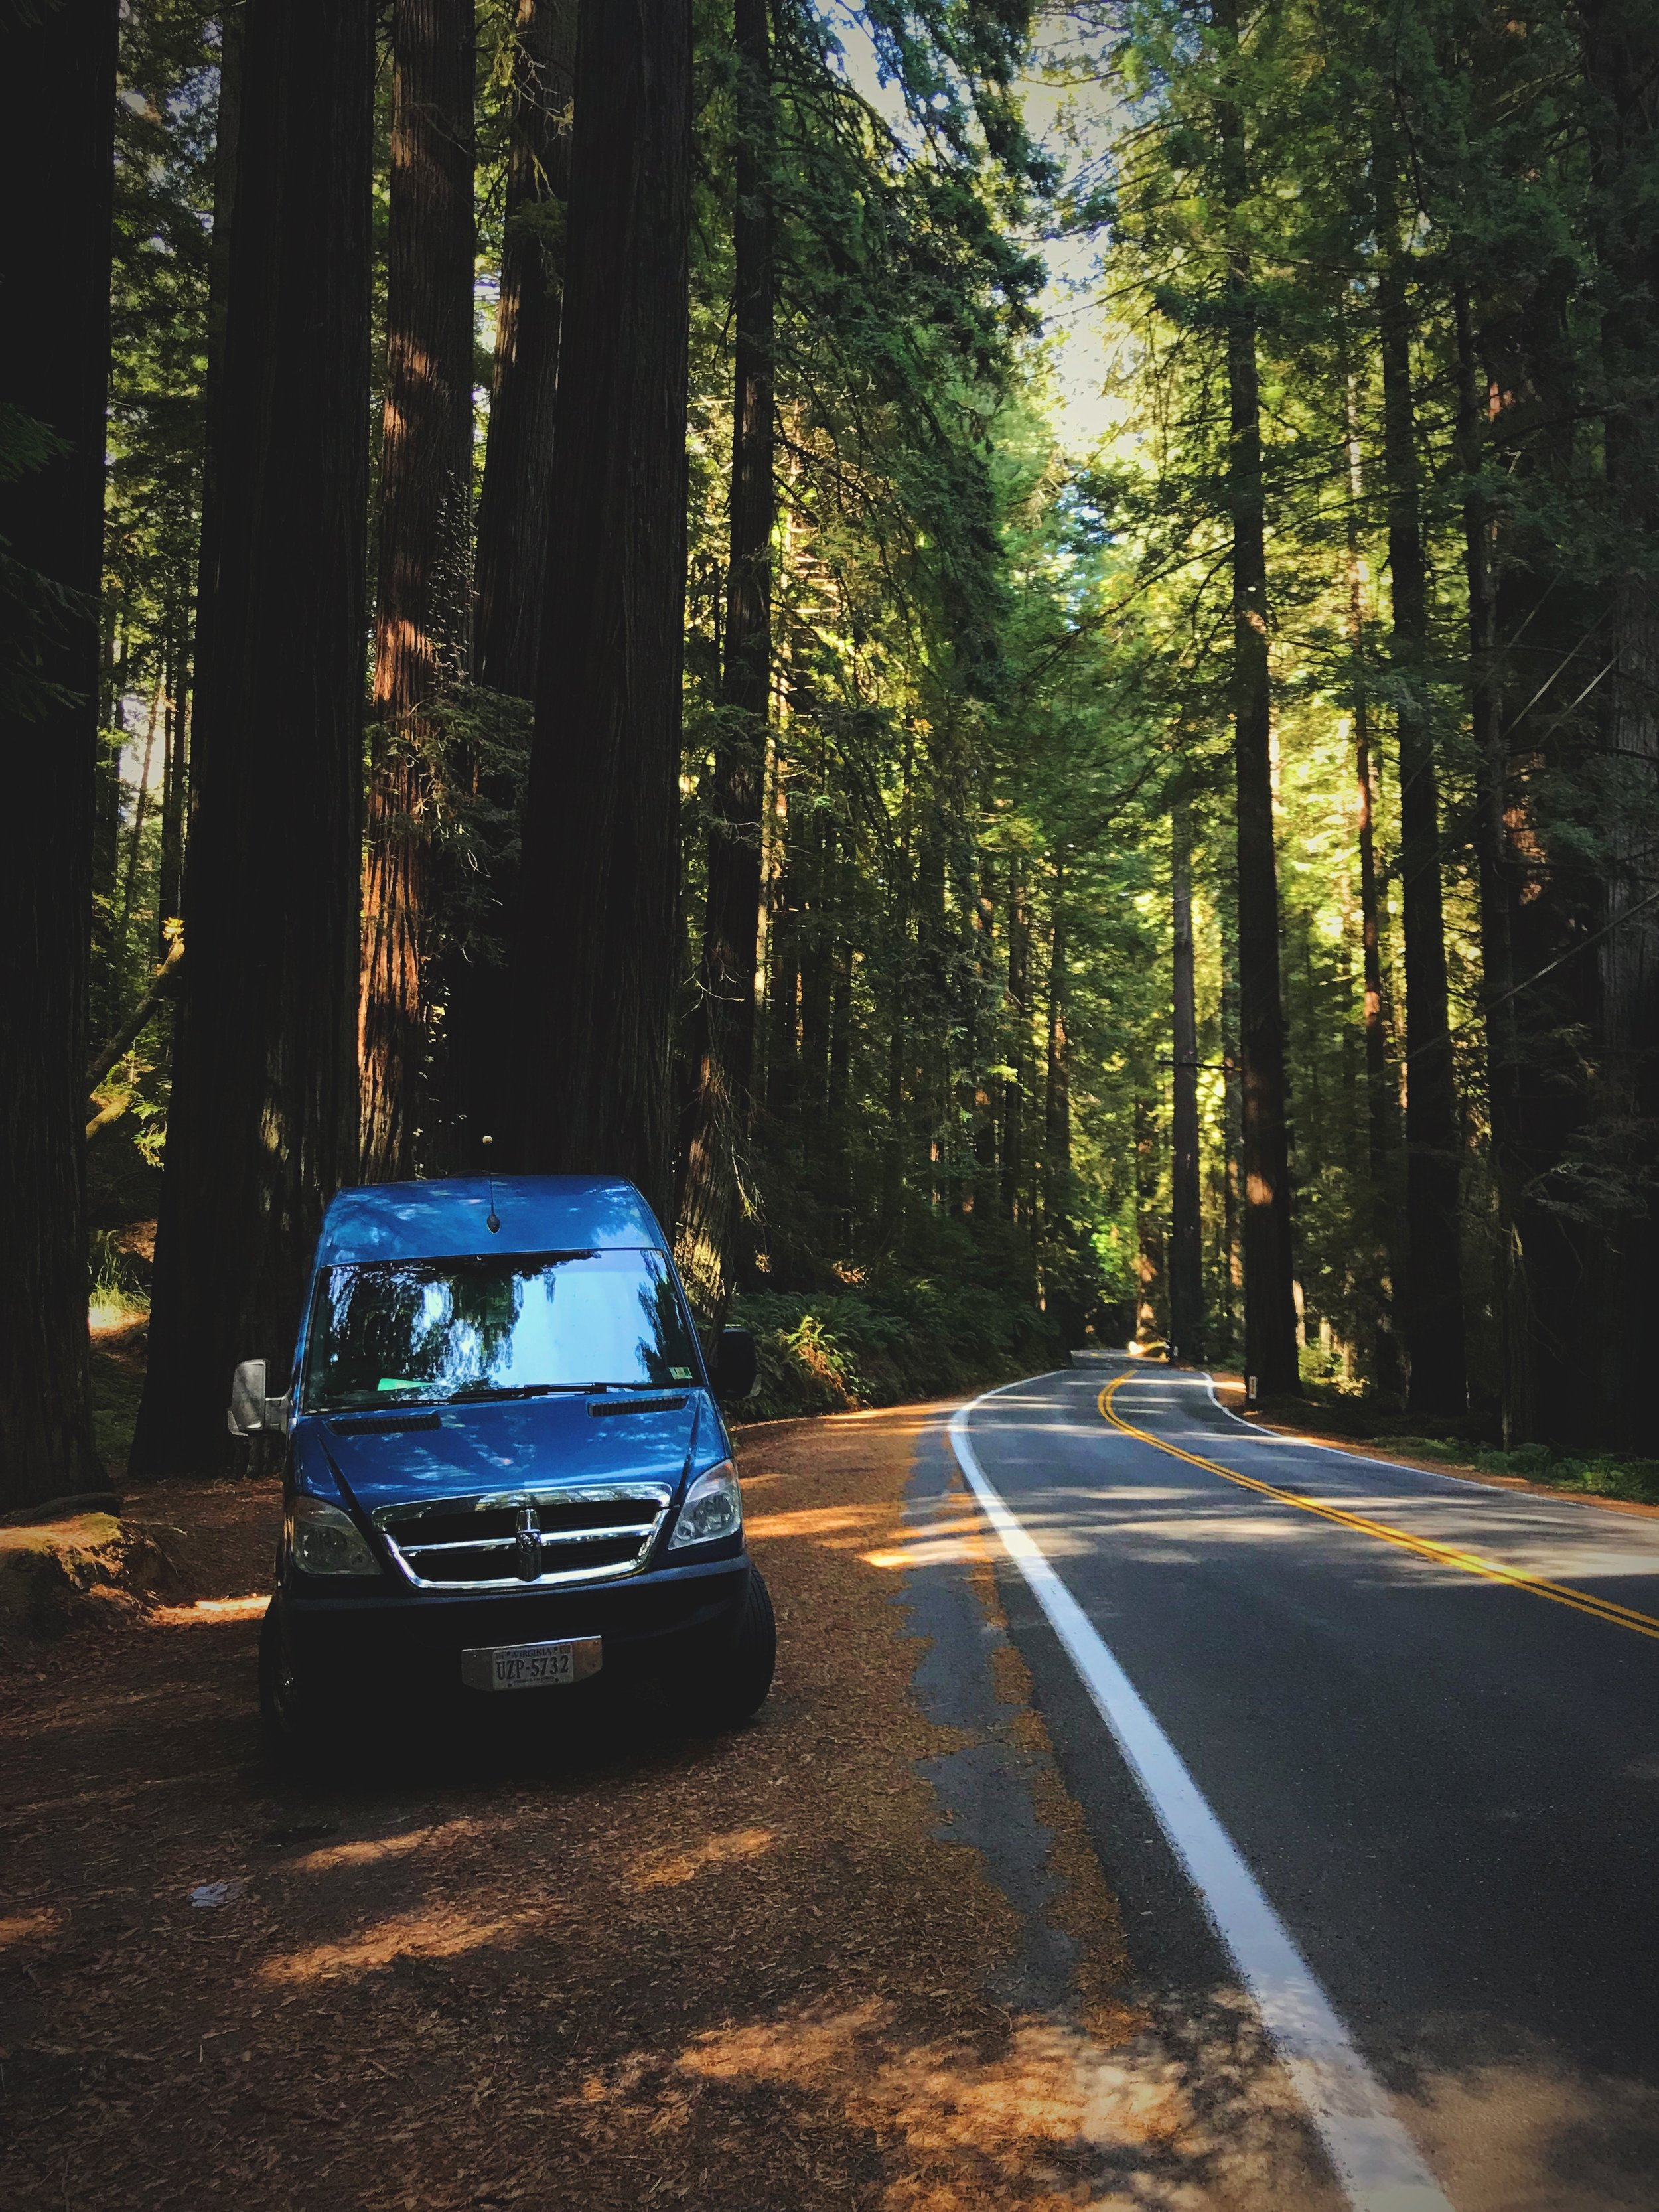 There are a lot of places to pull off along the Avenue of the Giants so you can explore the redwoods.